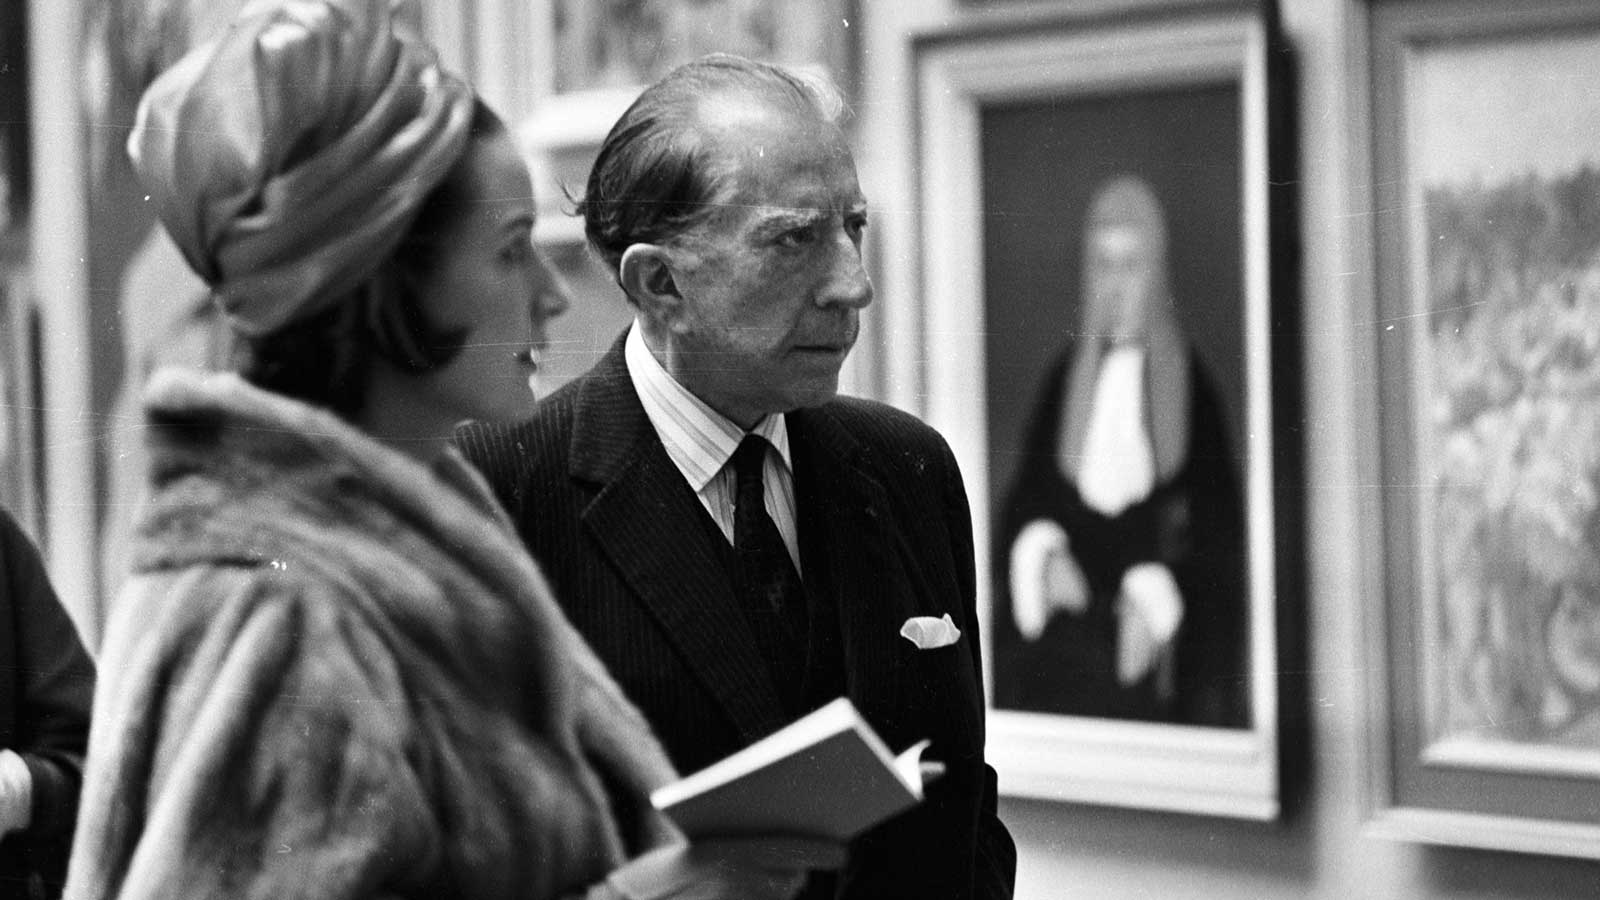 American oil executive, multi-millionaire art collector John Paul Getty attends a private viewing of the Royal Academy Summer Exhibition in London, April 1965. Photo by McKeown/Express/Getty Erin Thompson